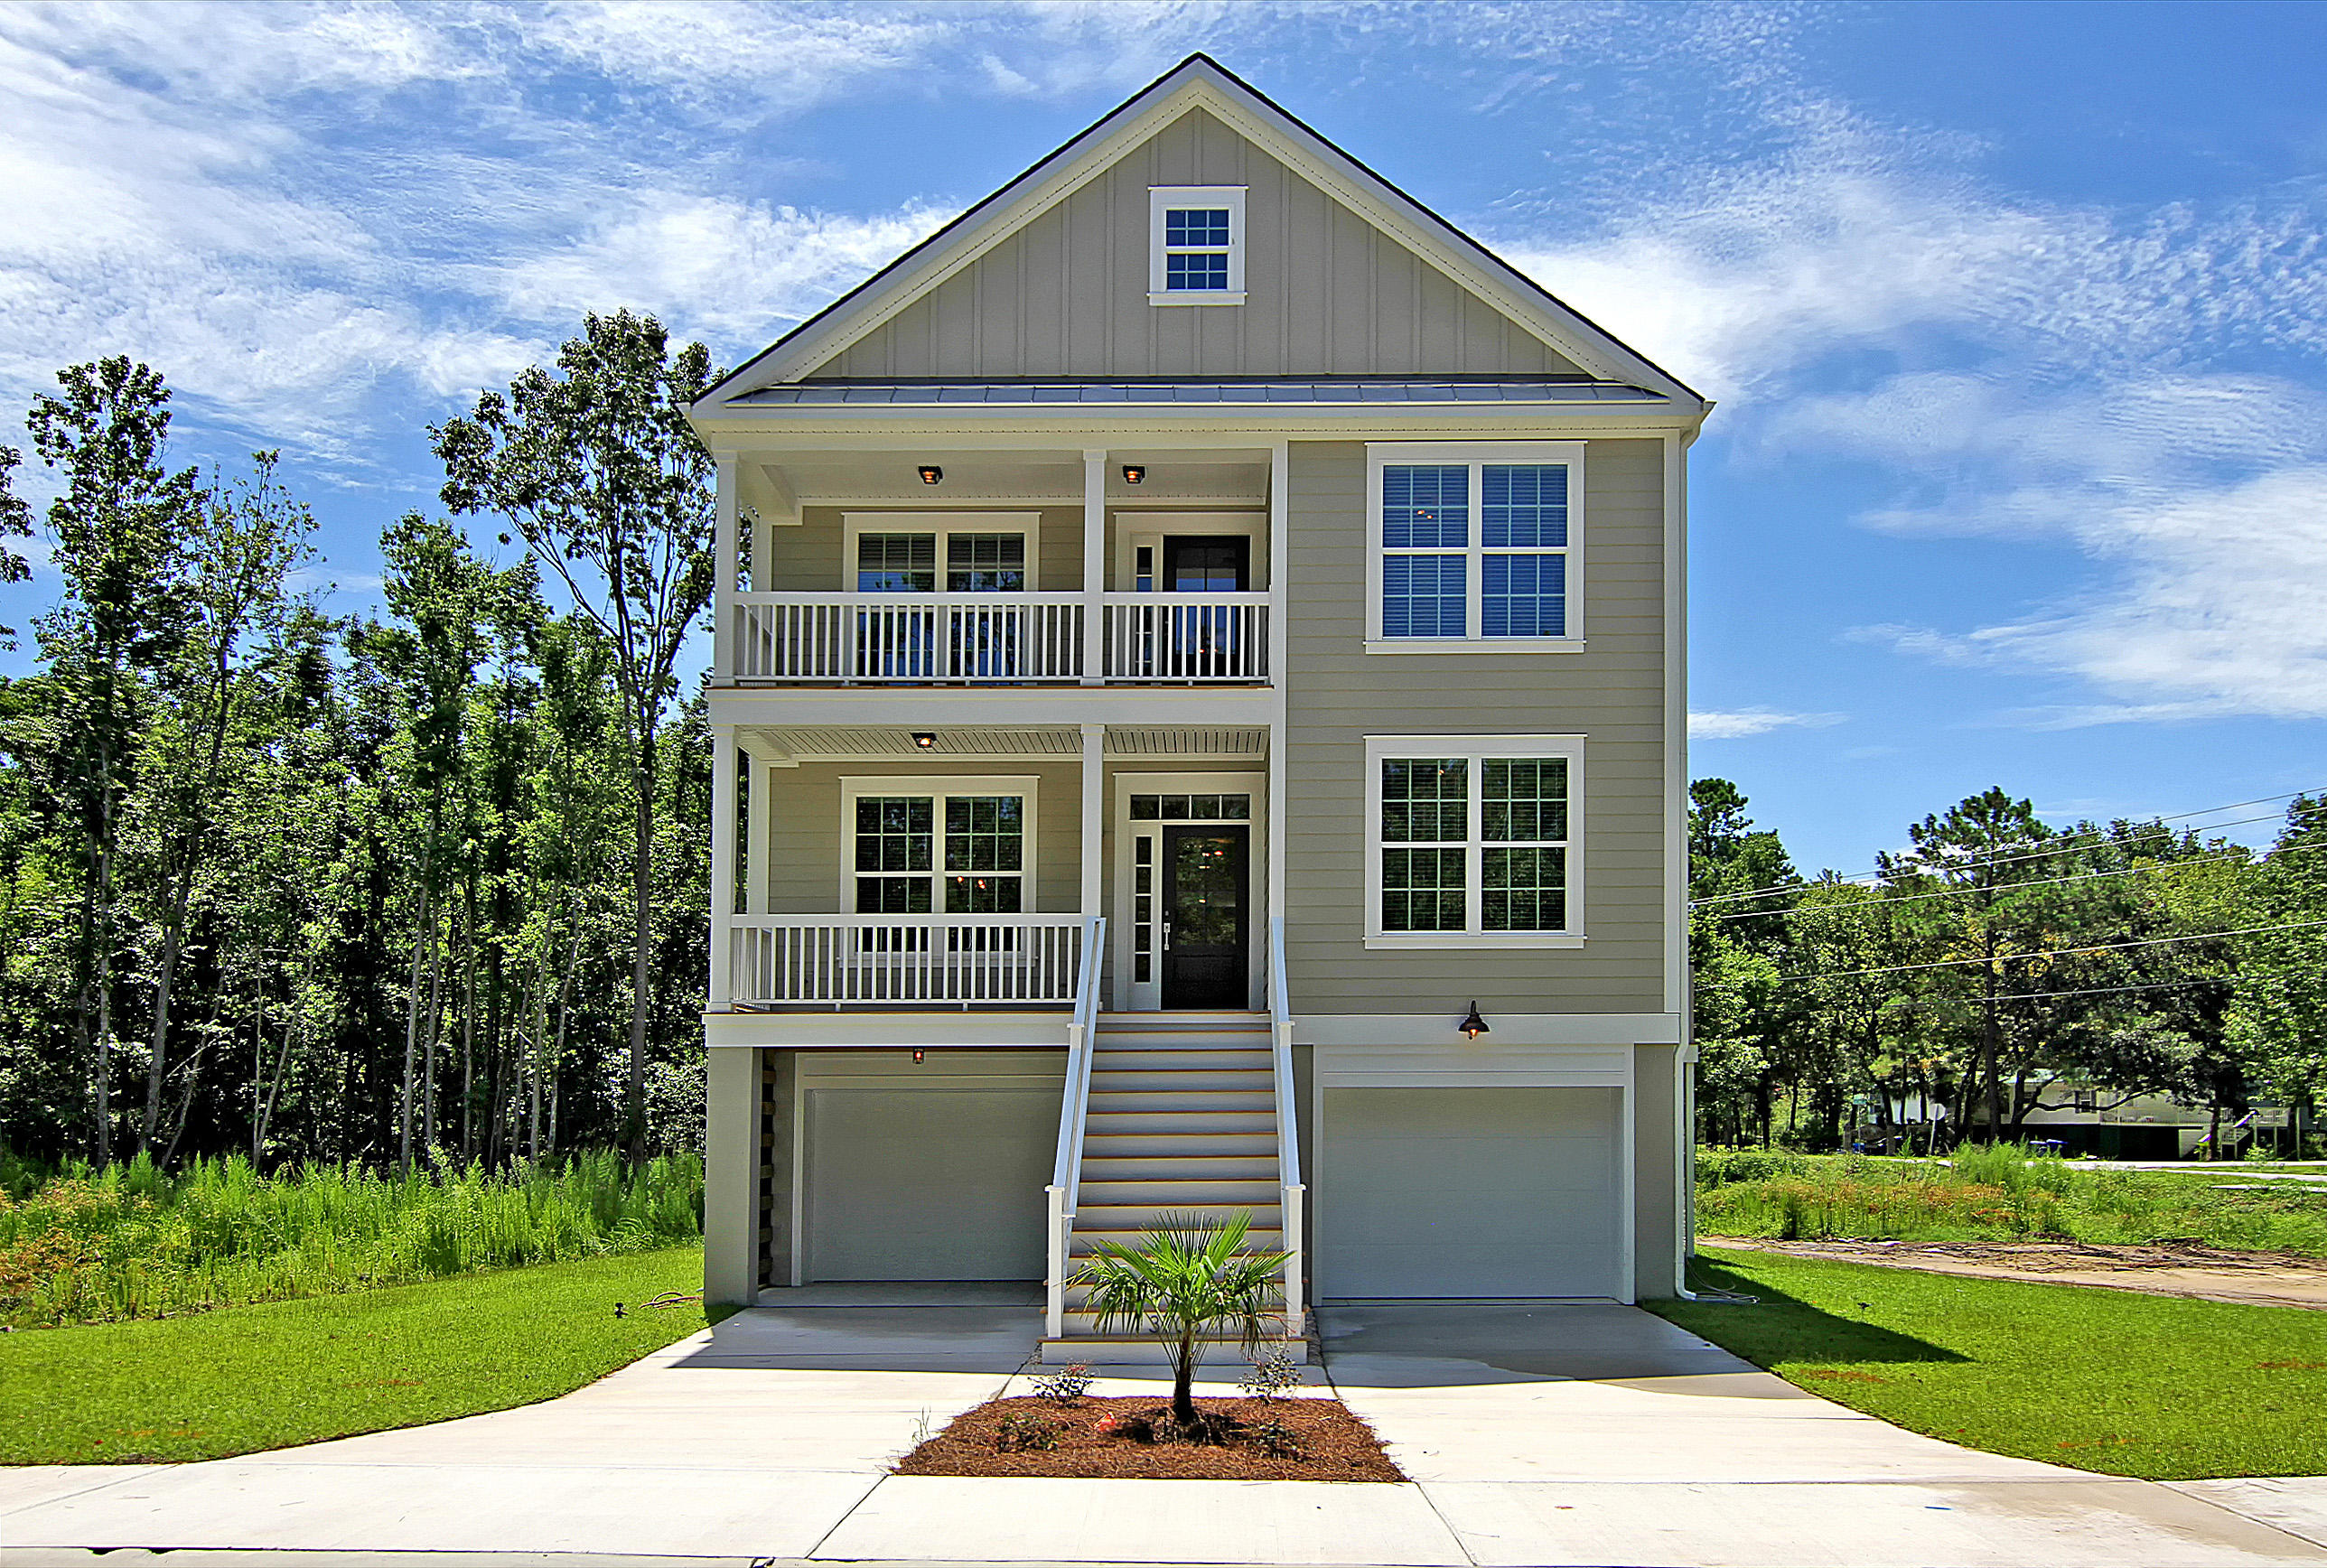 Wando Forest Homes For Sale - 3705 Sandy Gate Ln, Mount Pleasant, SC - 68